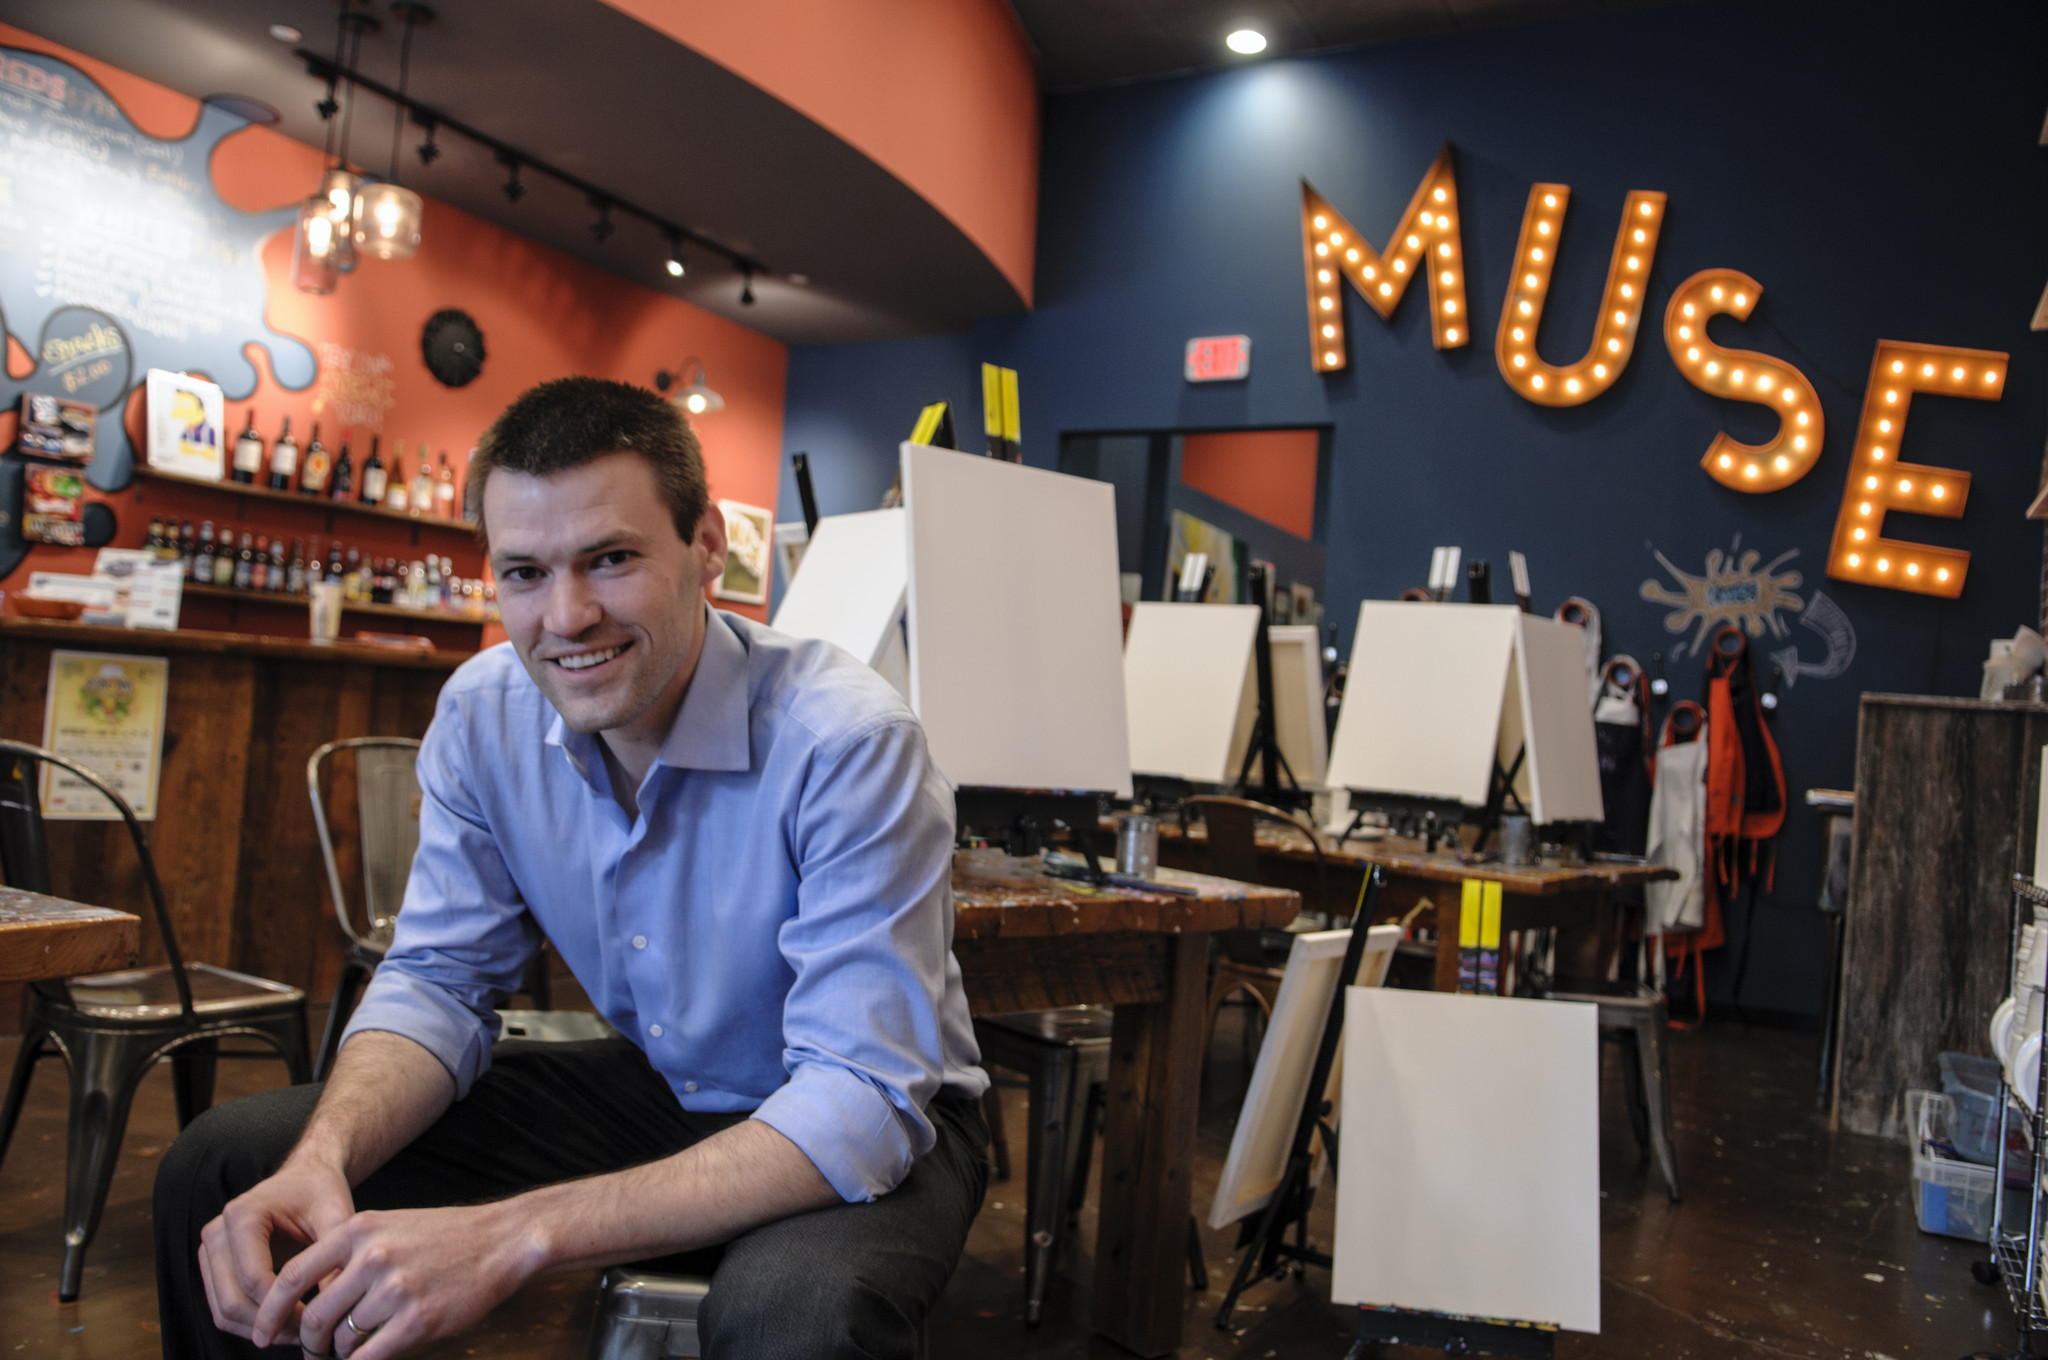 Newly Minted Mba Hopes Painting Parties Draw Profits